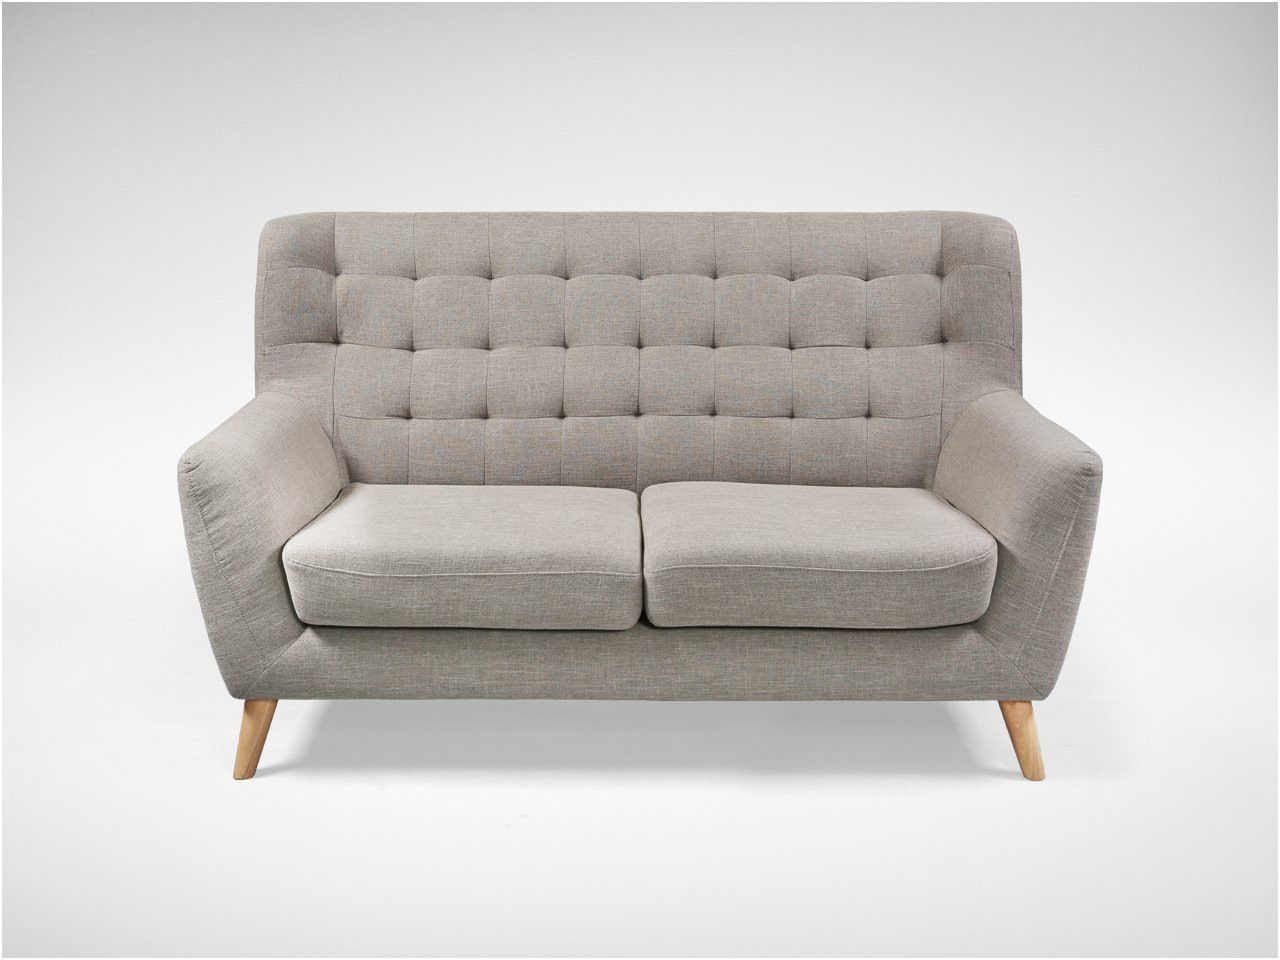 53 Reference Of Couch Grau U Form Sofas For Small Spaces Couches For Small Spaces Couch